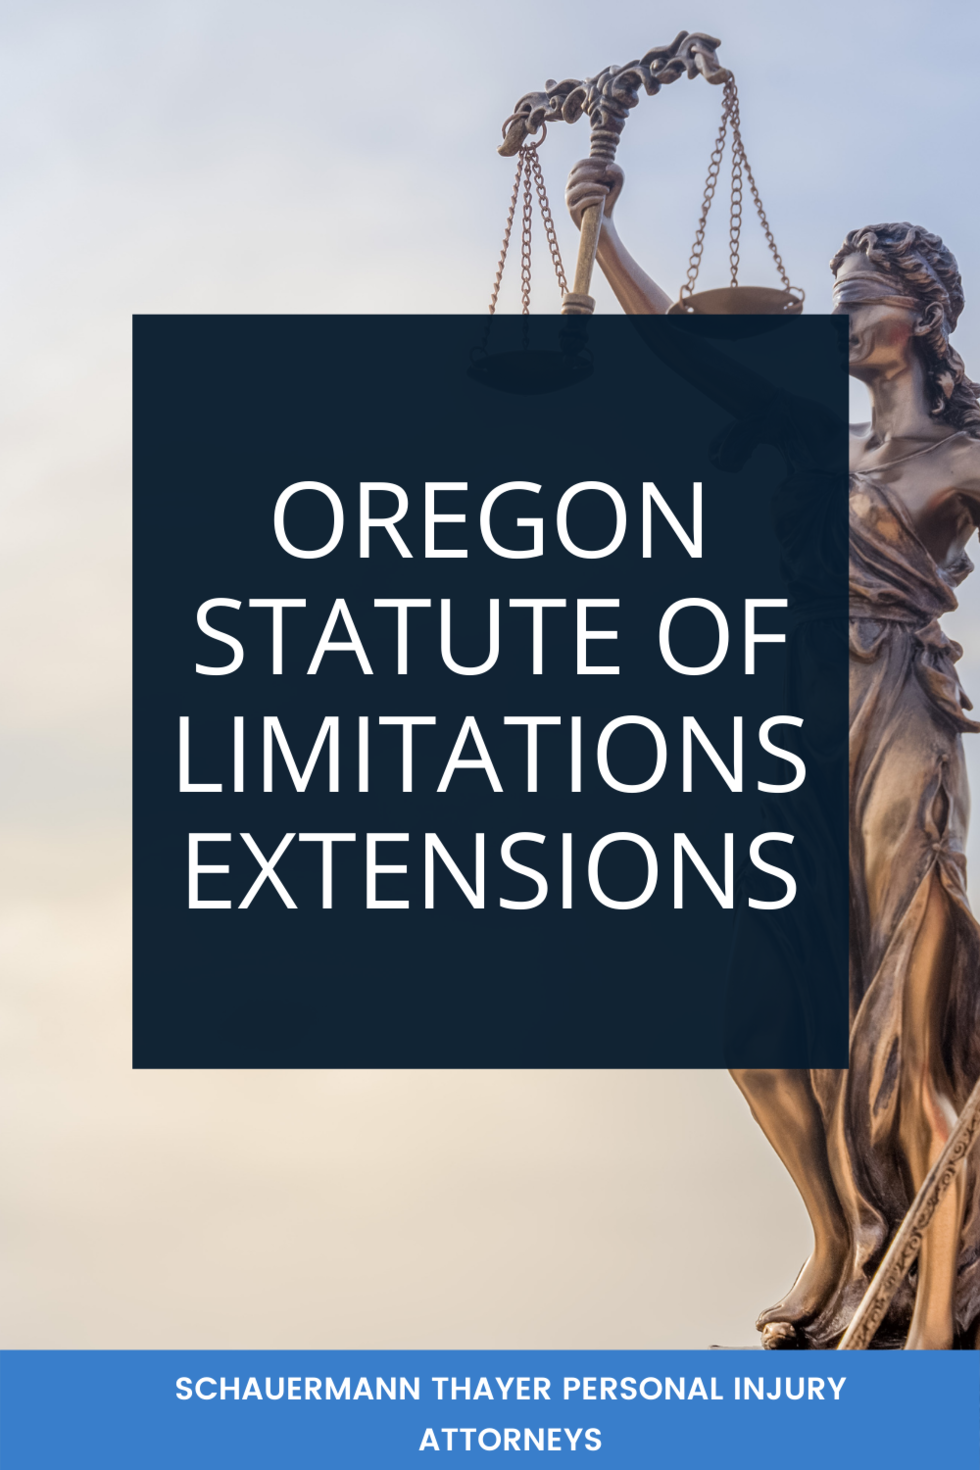 statue_of_limitations_extensions